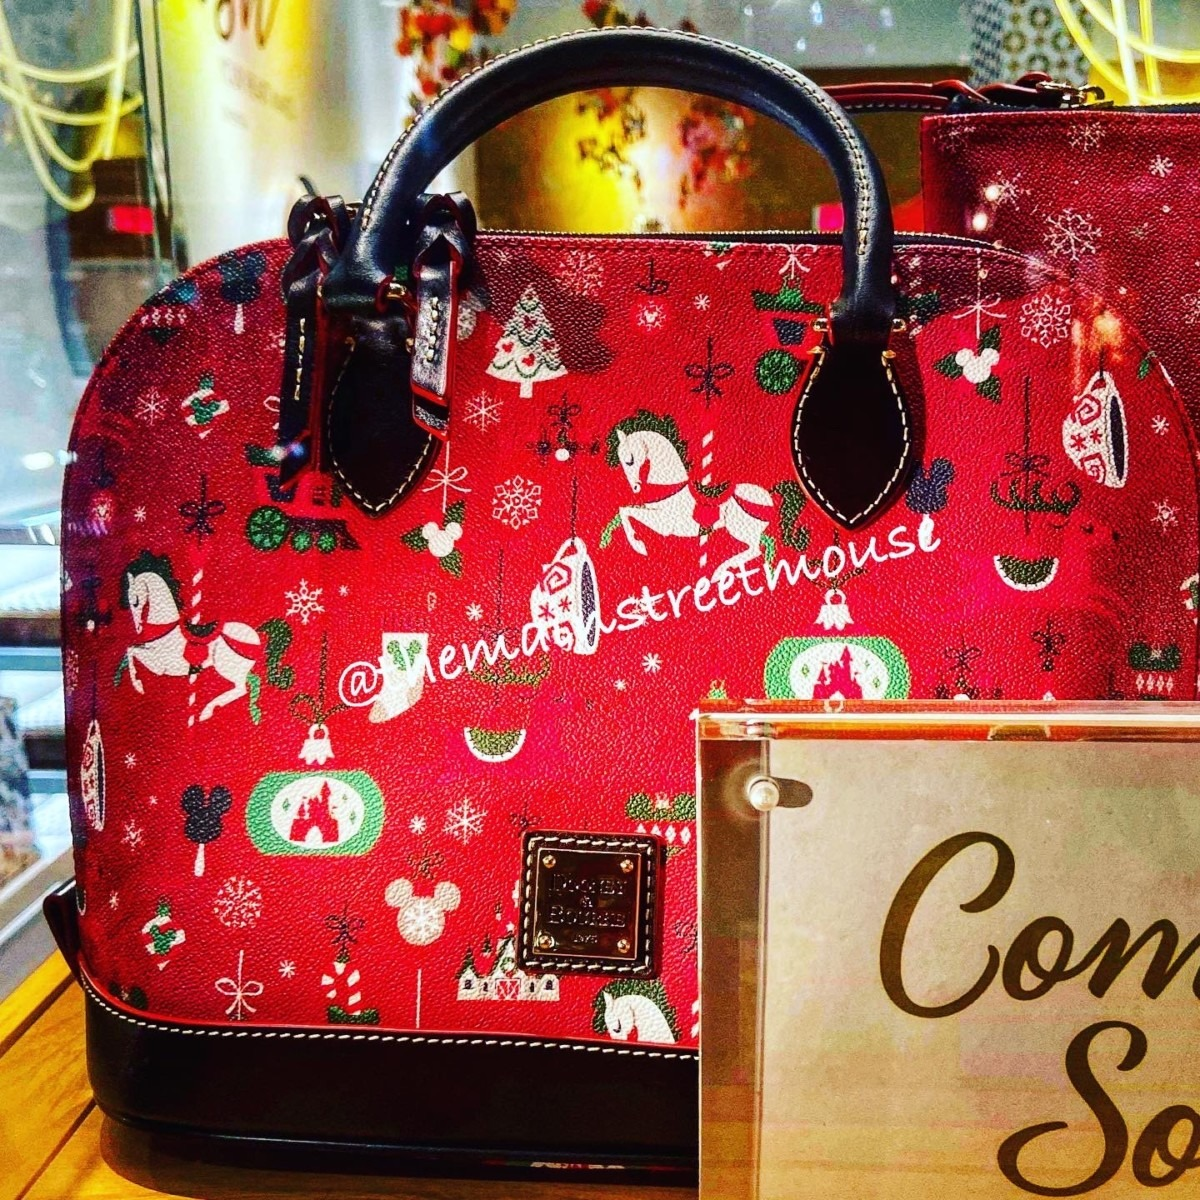 The Holiday Disney Dooney & Bourke Bags are Available Friday! 2